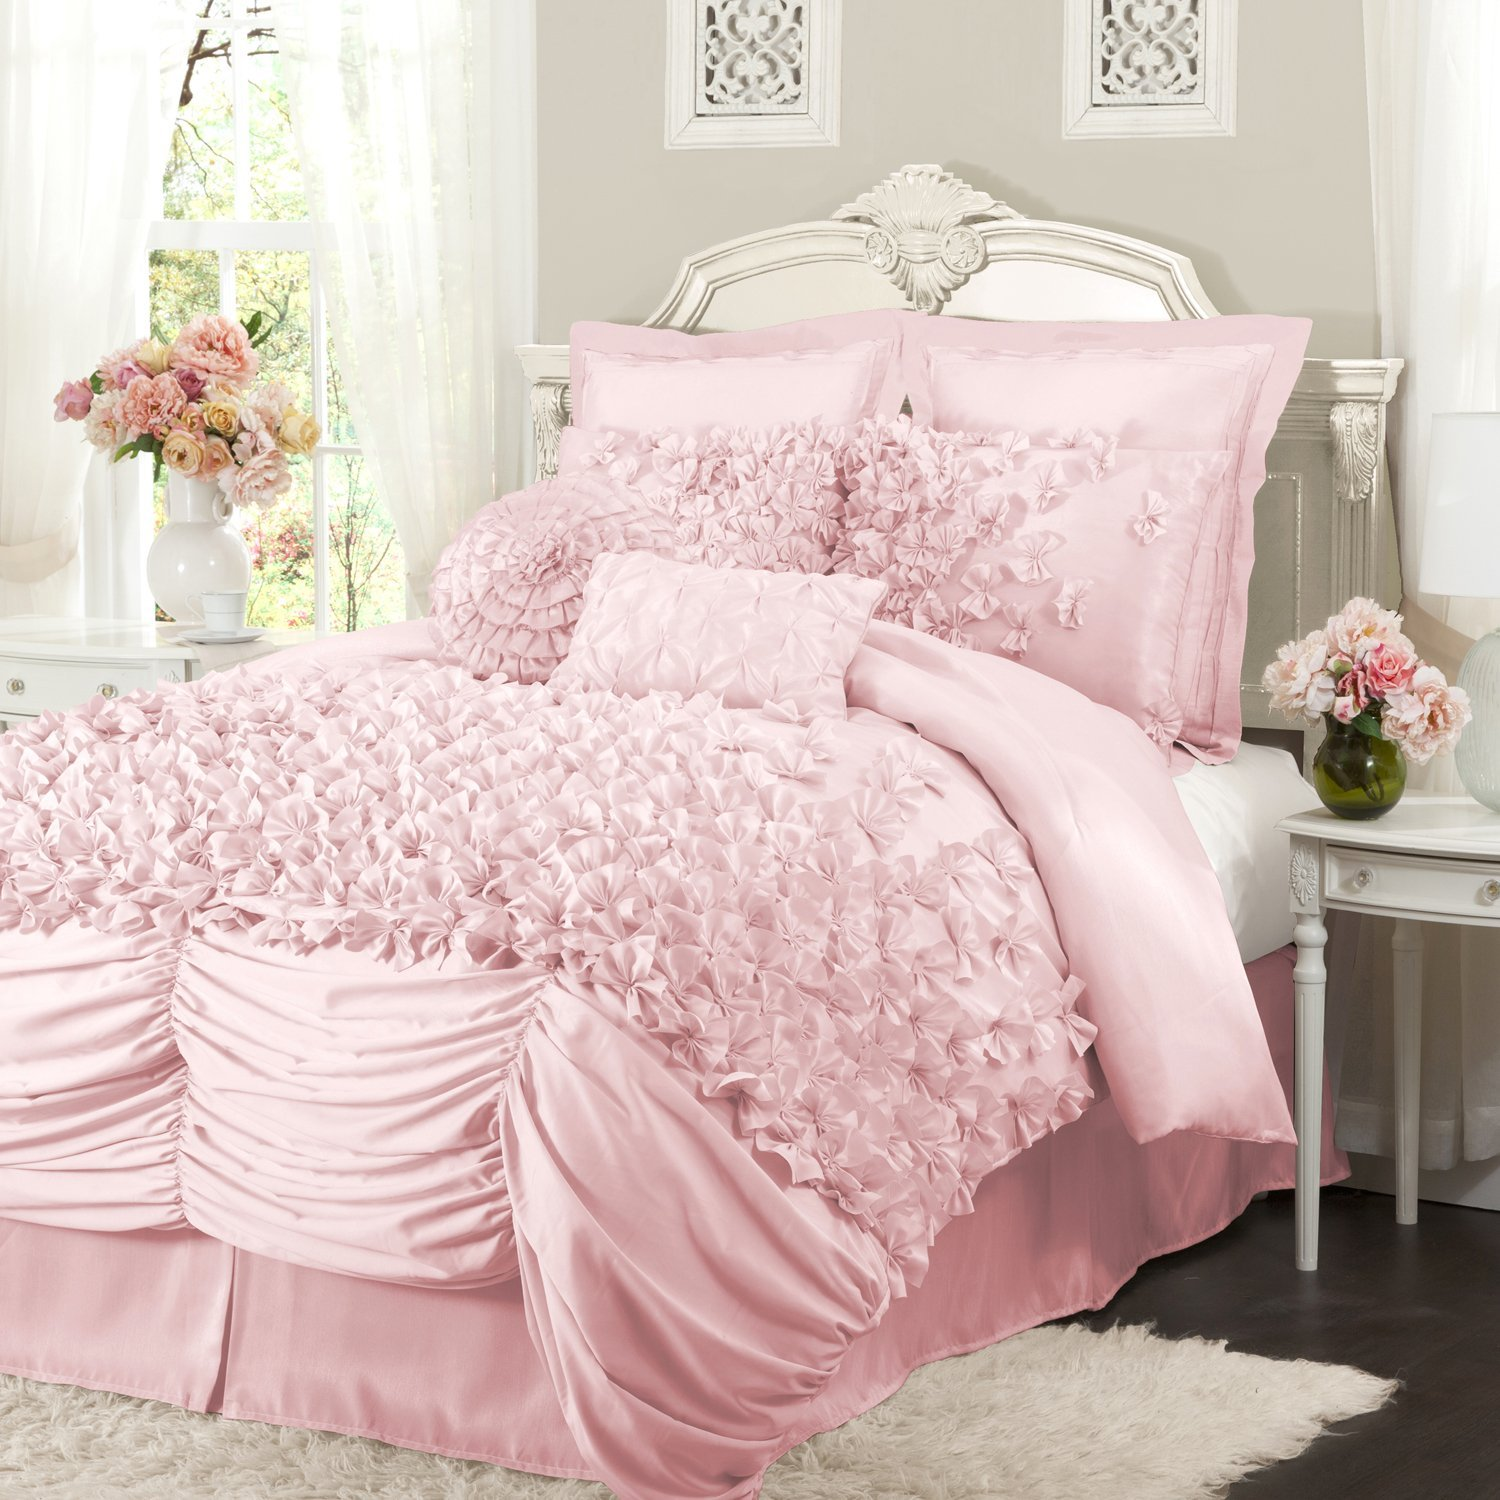 Madison Park Sabrina Comforter Set Full/Queen Size - Pink, Medallion – . Madison Park Sabrina provides a soft and cozy look for your bedroom. The cotton chenille fabric creates a medallion design on the top of bed and shams in a soft pink color.